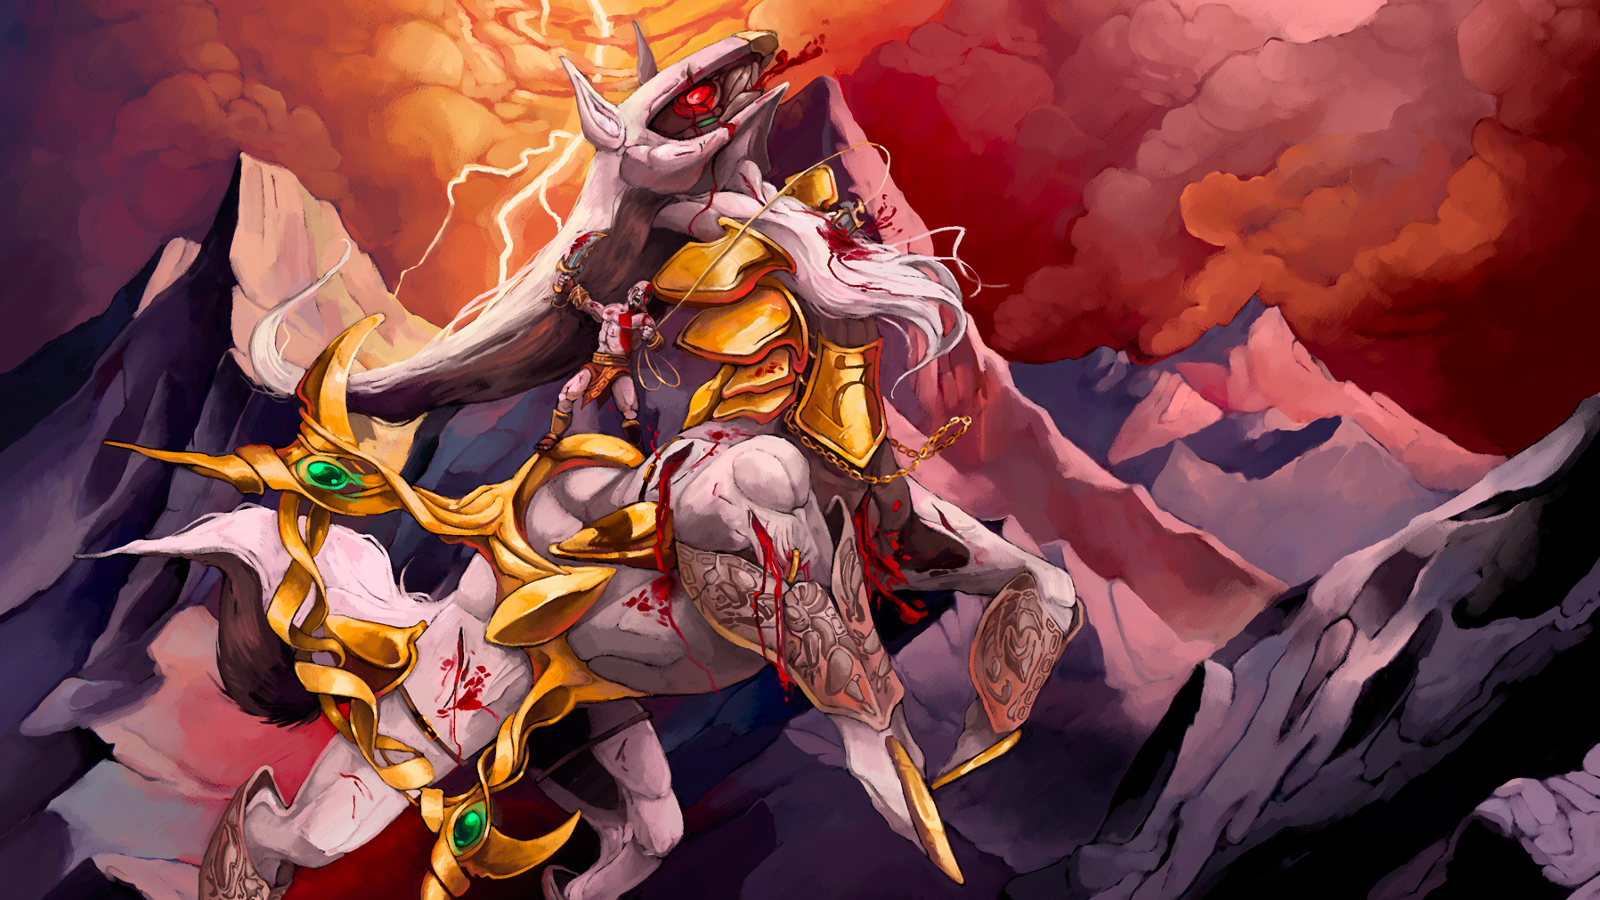 Video Game - Crossover  Arceus (Pokémon) Kratos (God Of War) God of War Pokémon Wallpaper